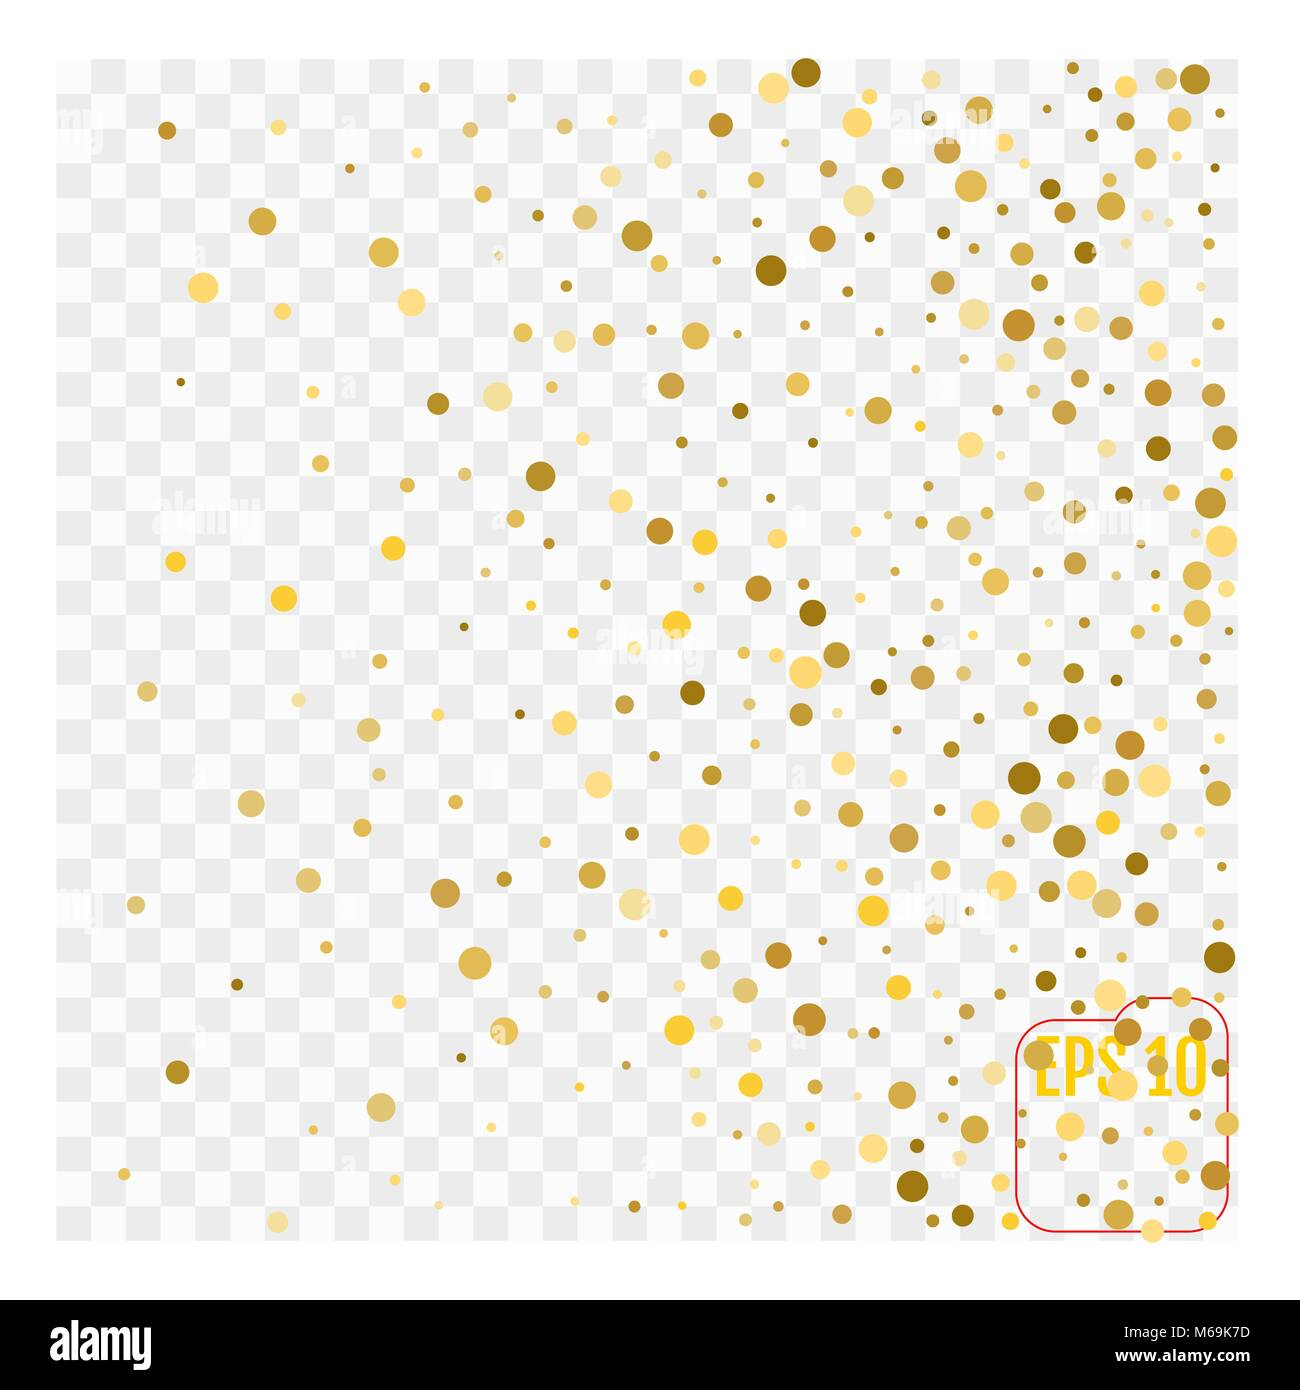 aa98a177881 Gold glitter corners for frame or border